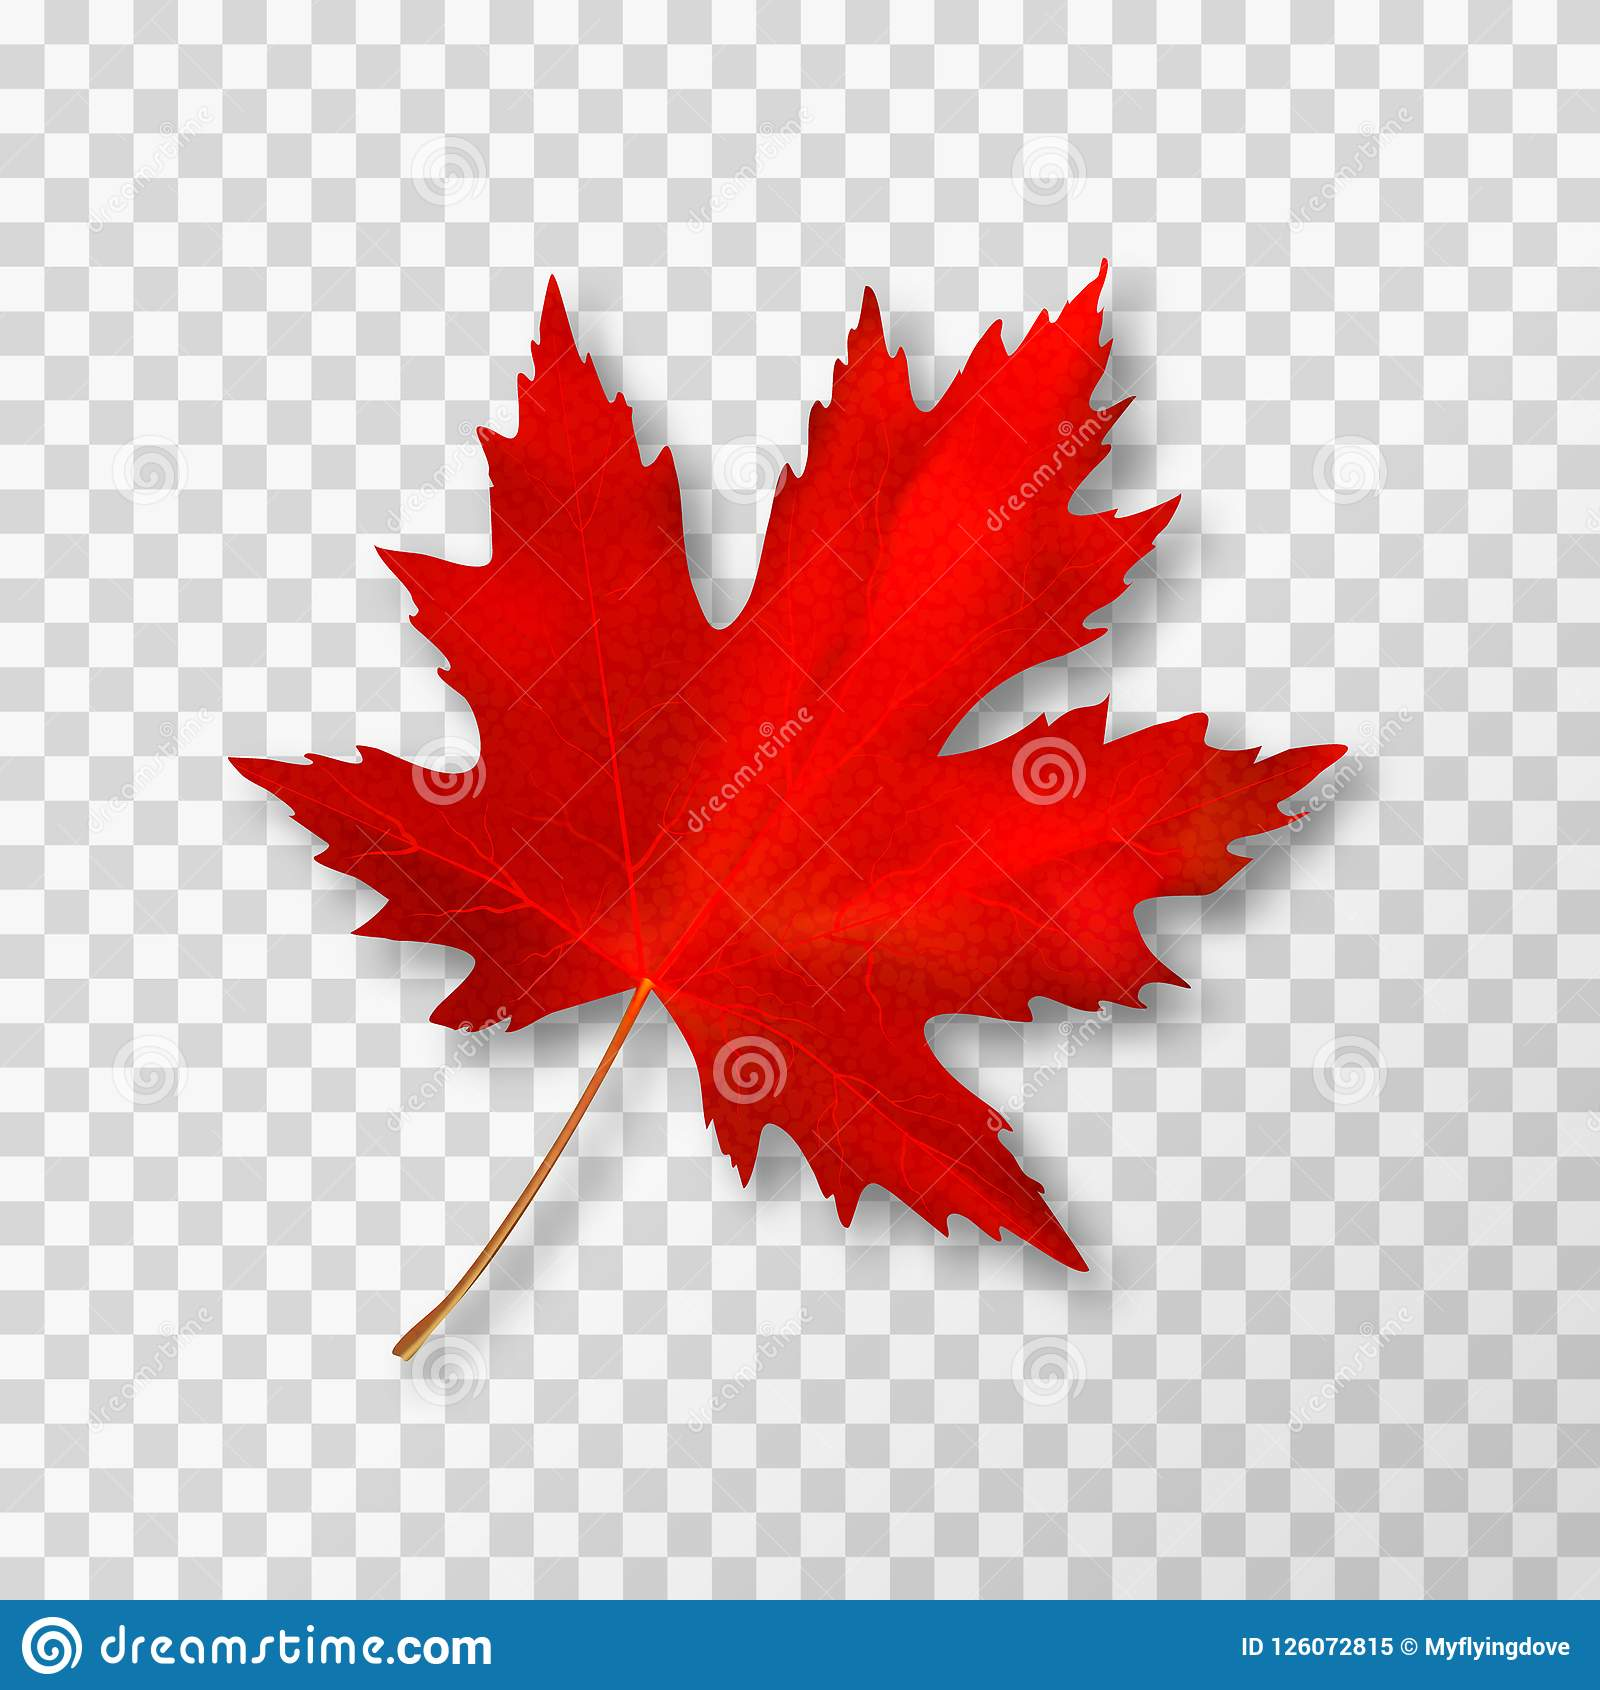 Maple Leaf Isolated On Transparent Background Bright Red Autumn Realistic Leaf Vector Illustration Eps 10 Stock Image Image Of Nature Pattern 126072815